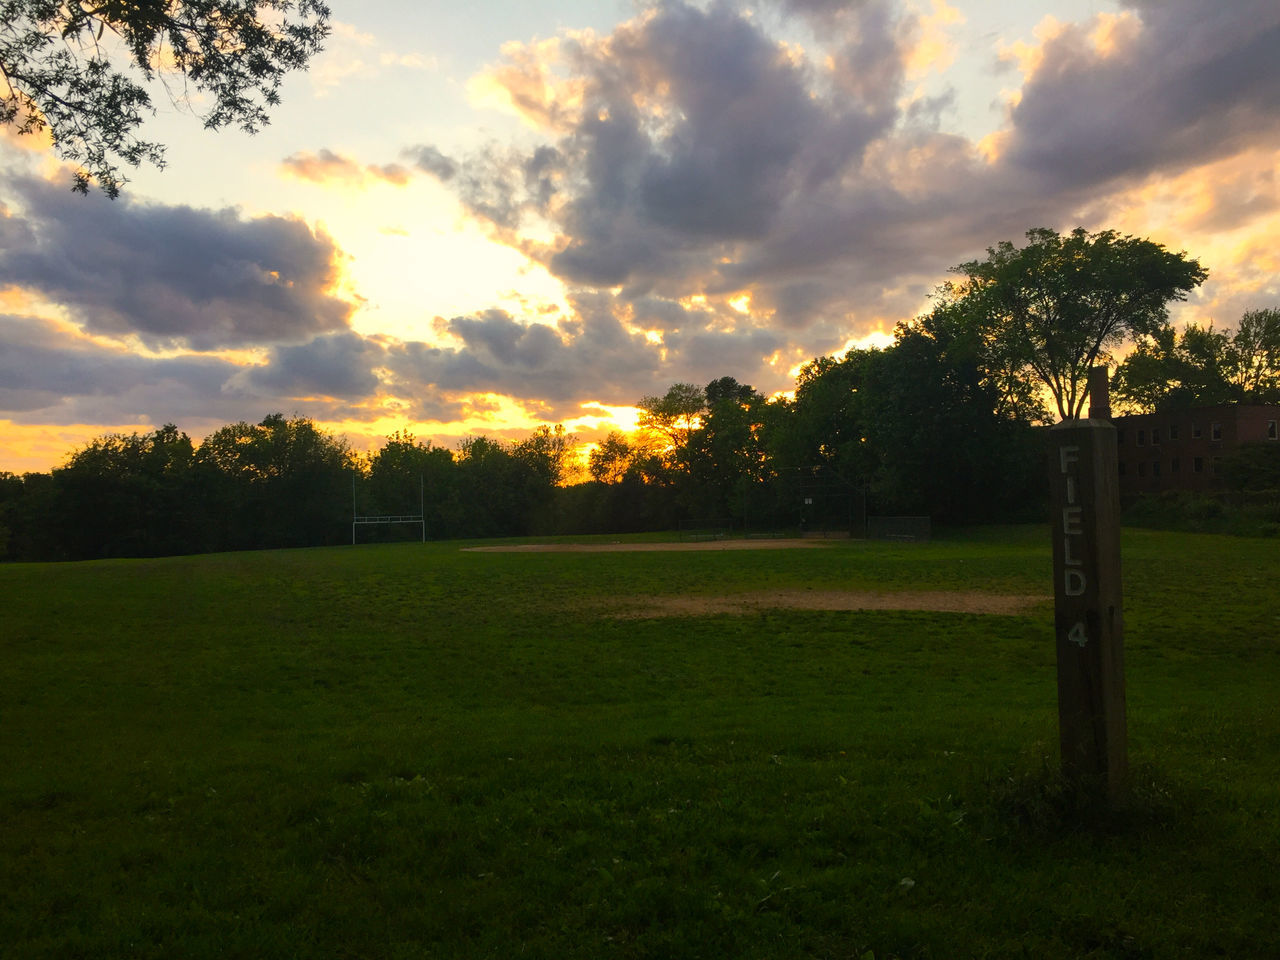 tree, grass, beauty in nature, nature, sunset, tranquility, tranquil scene, scenics, no people, cloud - sky, sky, field, sport, outdoors, growth, soccer, soccer field, day